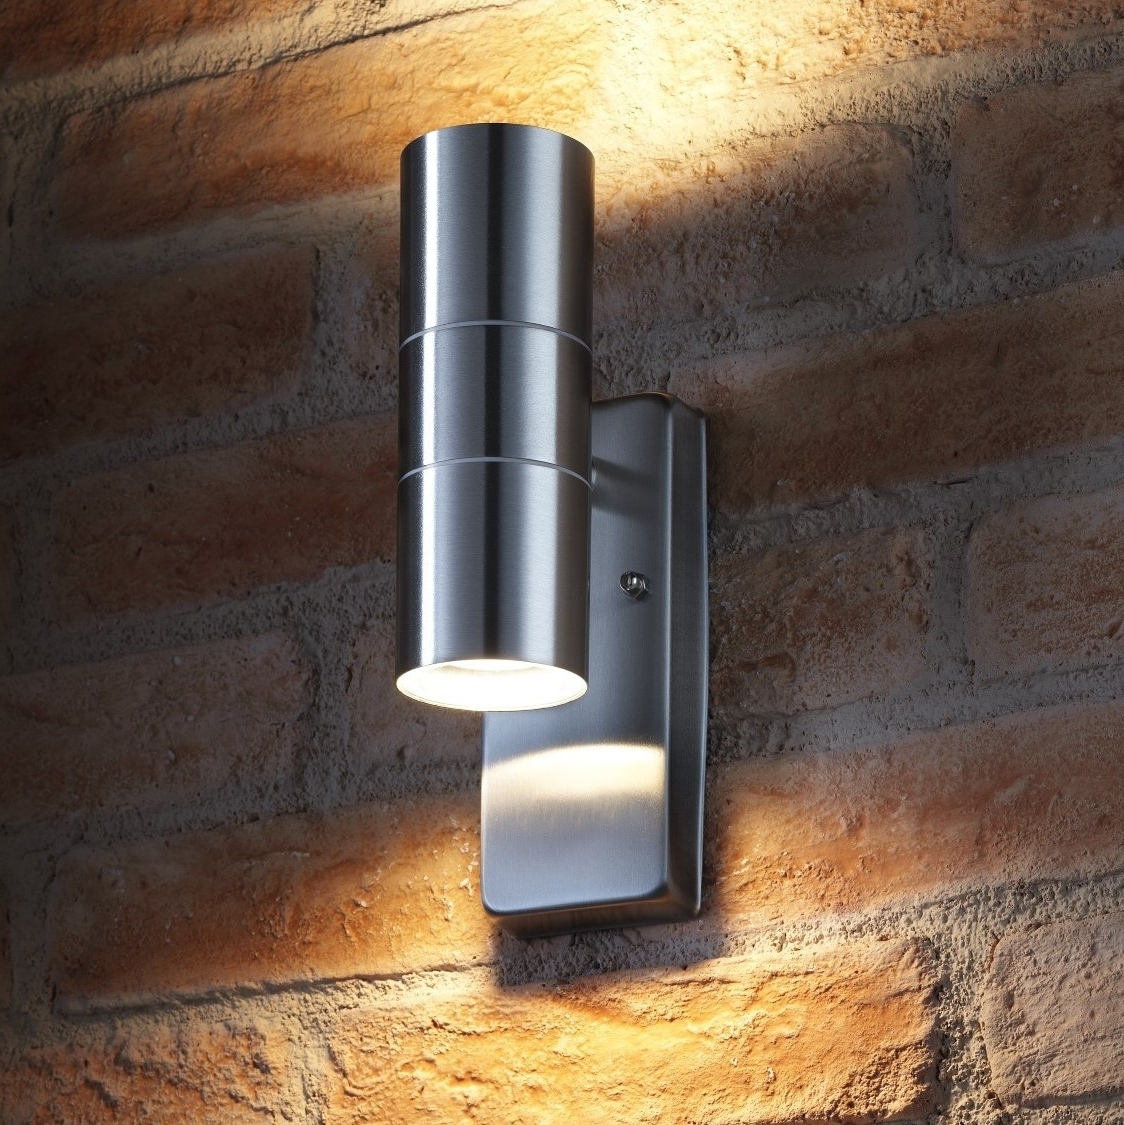 Auraglow Dusk Till Dawn Sensor Up & Down Outdoor Wall Light Within Favorite Up And Down Outdoor Wall Lighting (Gallery 7 of 20)